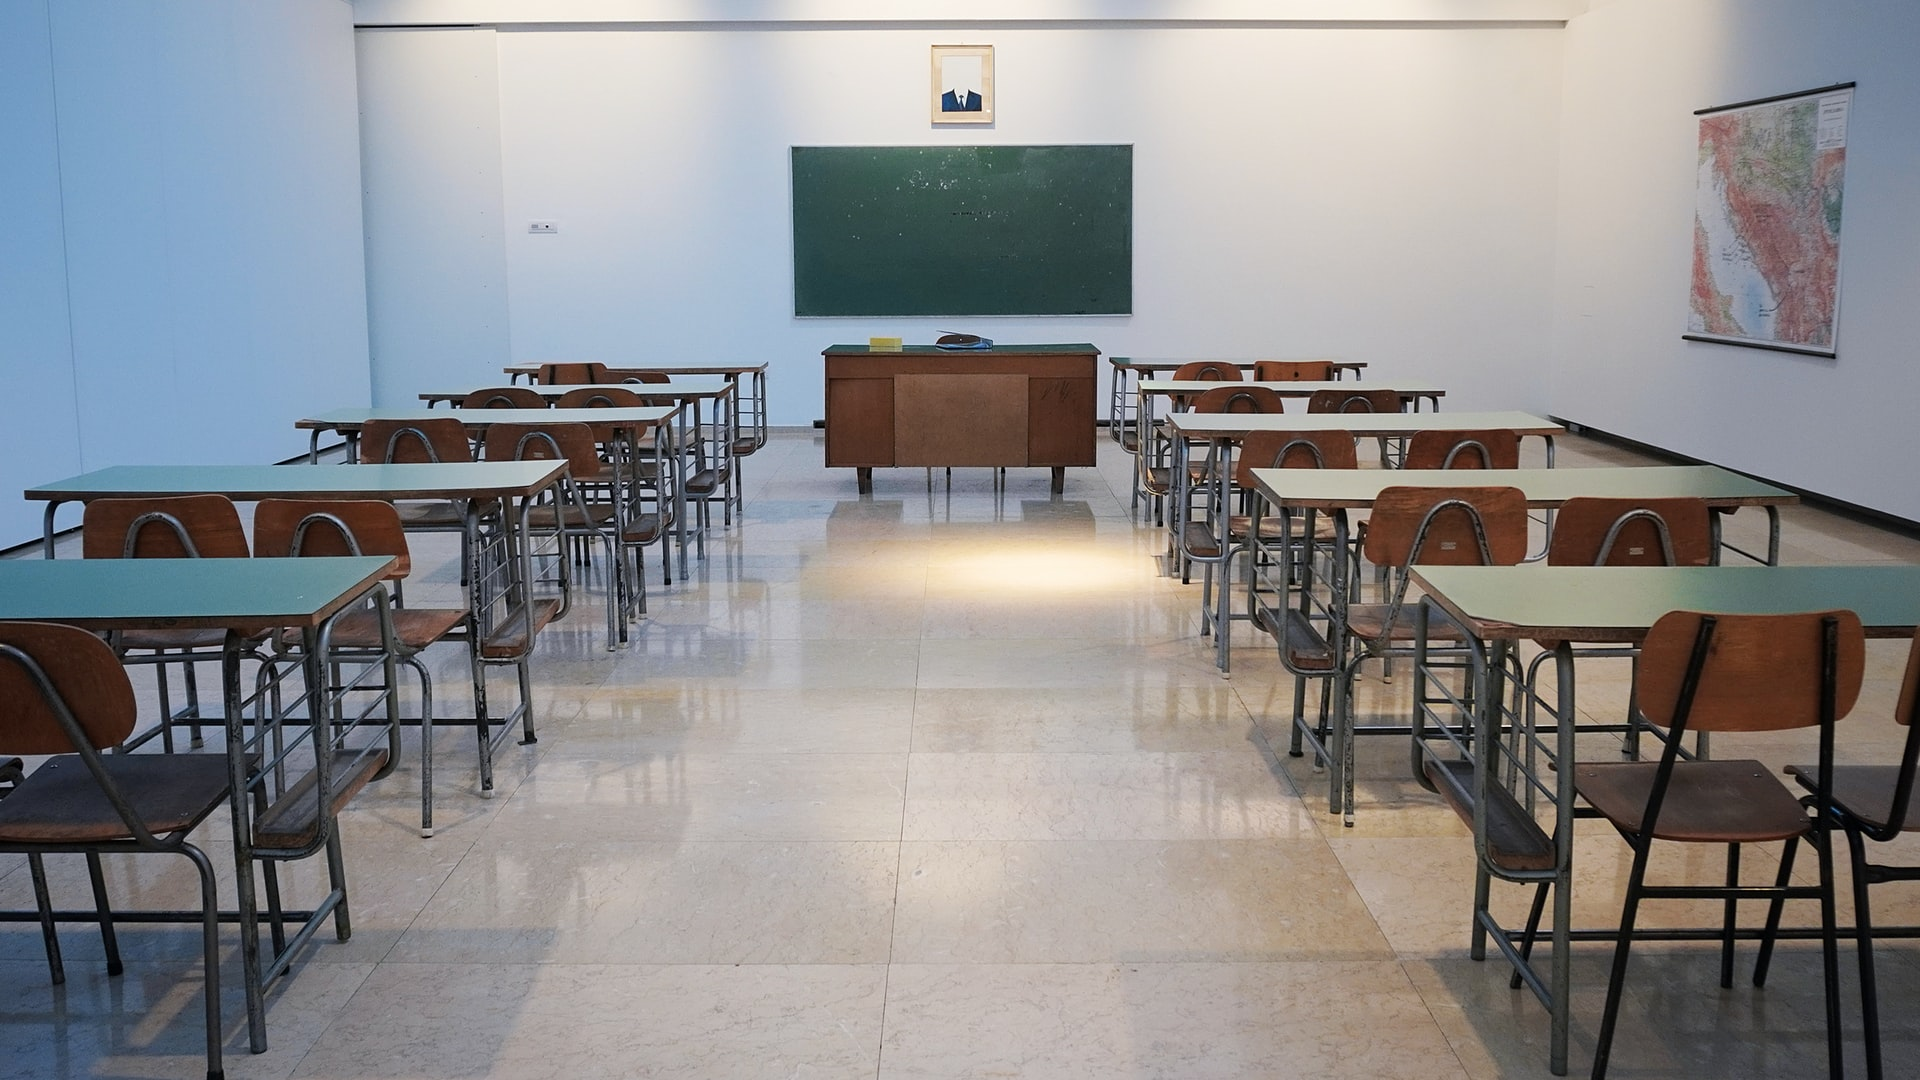 This photo illustrates what an empty class of mine might look like as I take troublesome online classes. Photo courtesy of Ivan Alexsic on Unsplash.